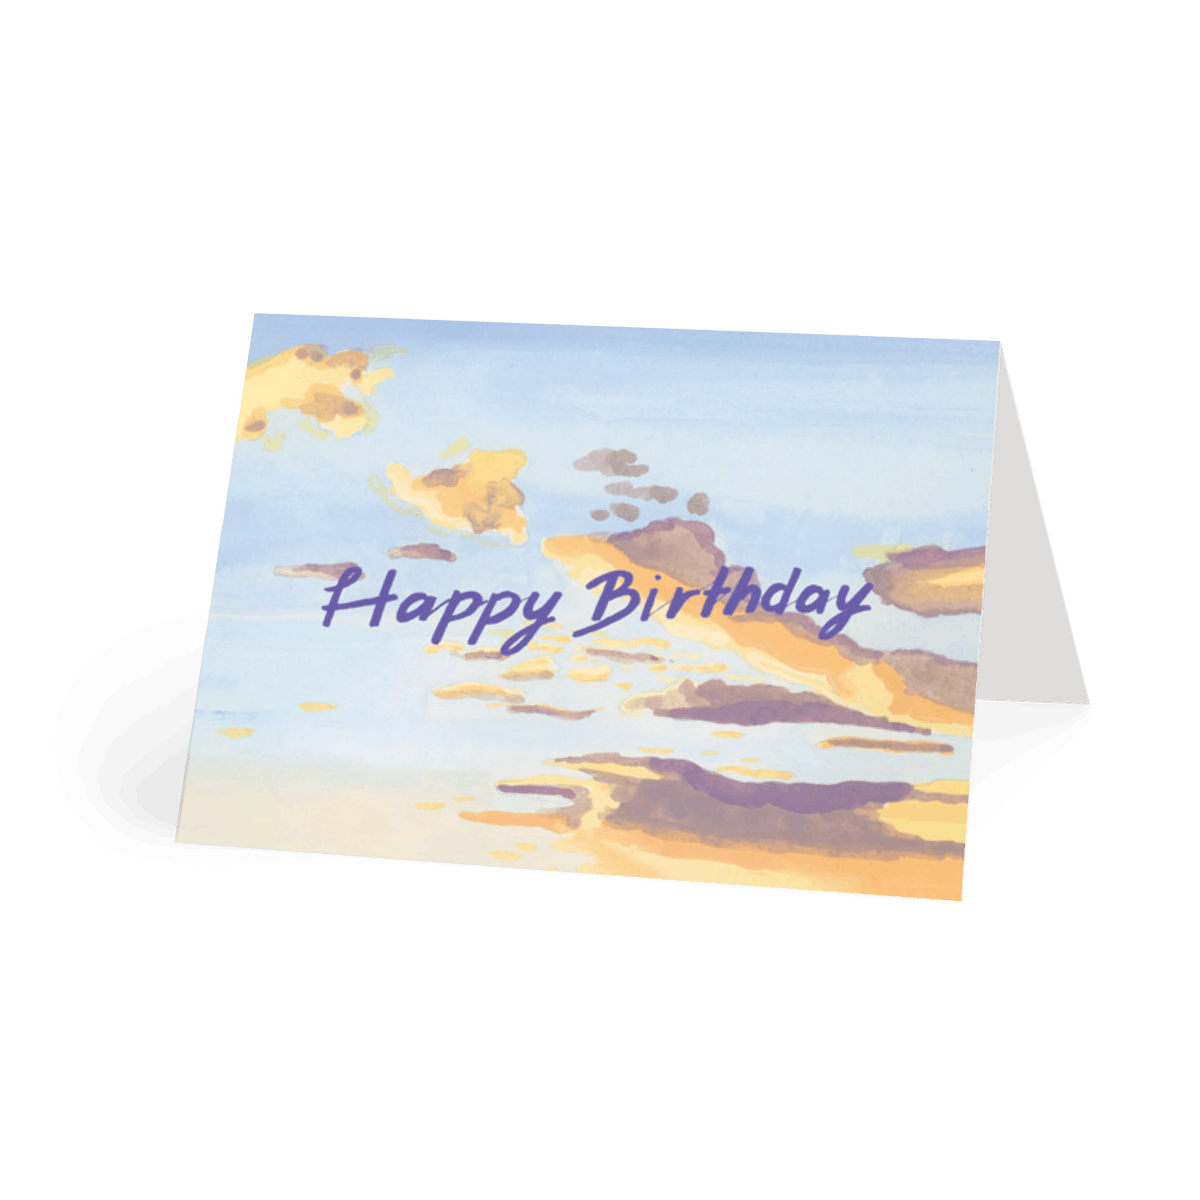 Https%3a%2f%2fwww.papier.com%2fproduct image%2f16885%2f14%2fhappy birthday sky 4442 front 1485260726.png?ixlib=rb 1.1